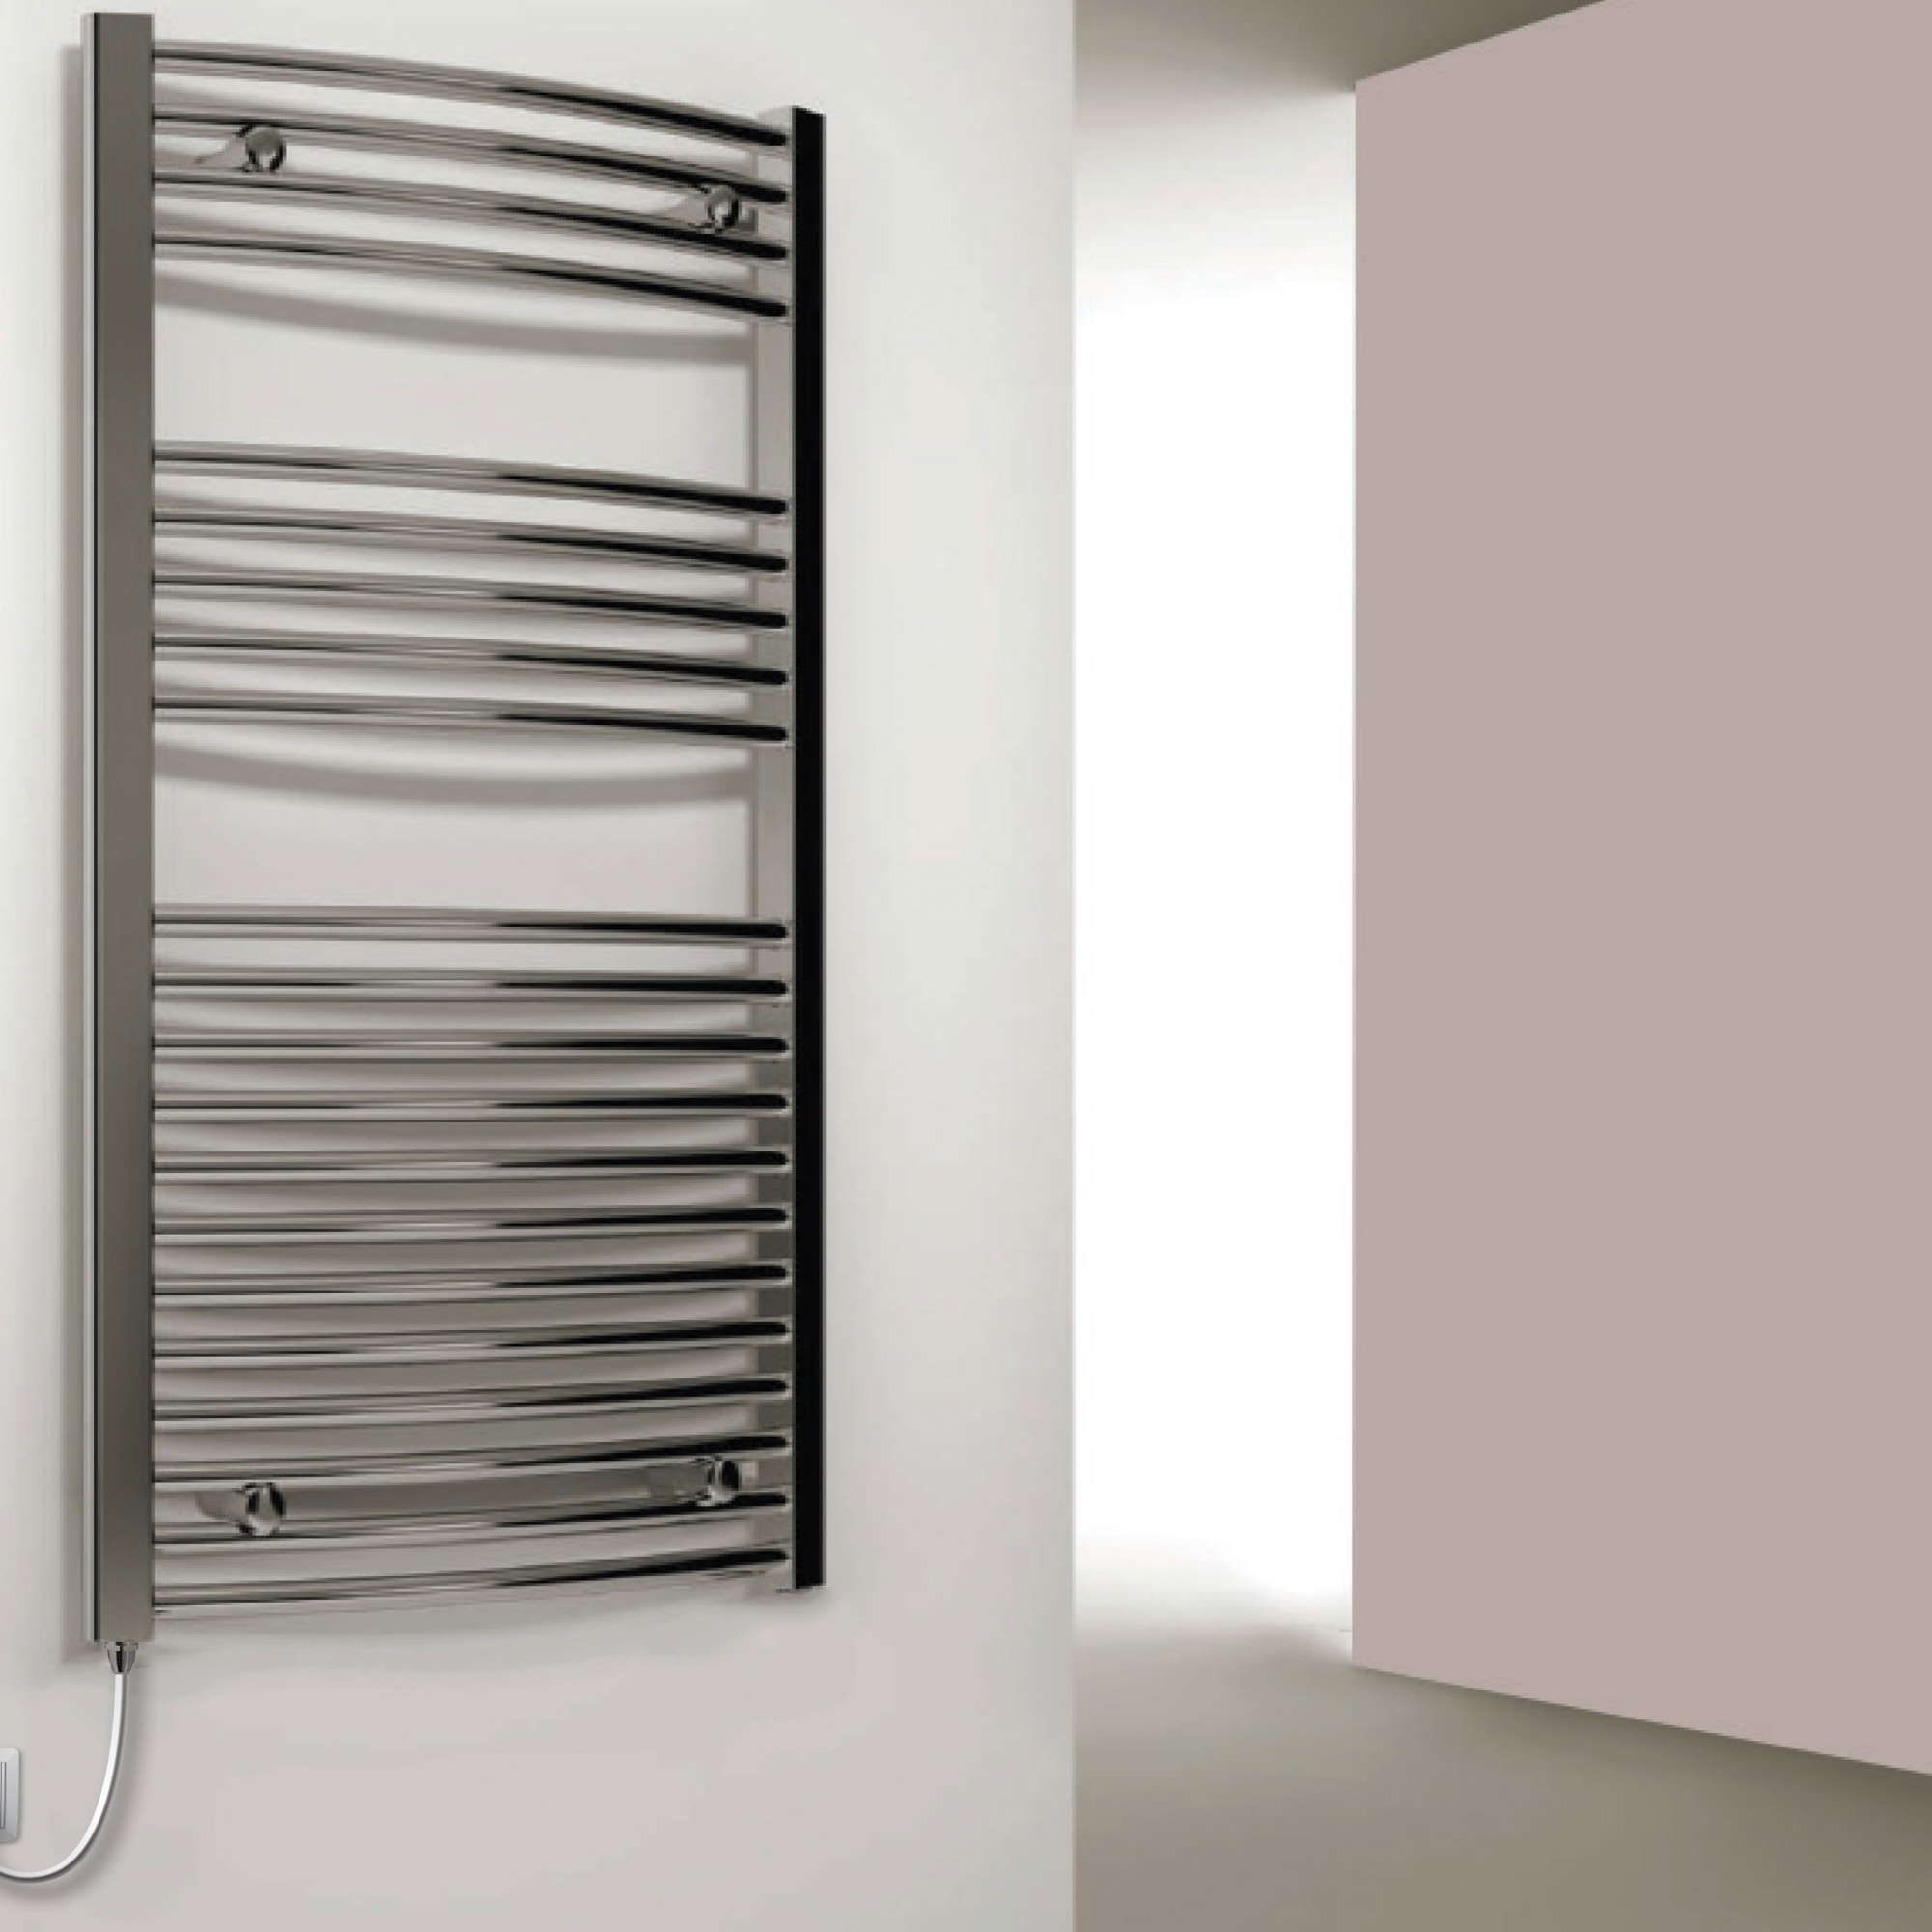 Reina Capo Curved Electric Heated Towel Rail 800mm H x 600mm W Chrome